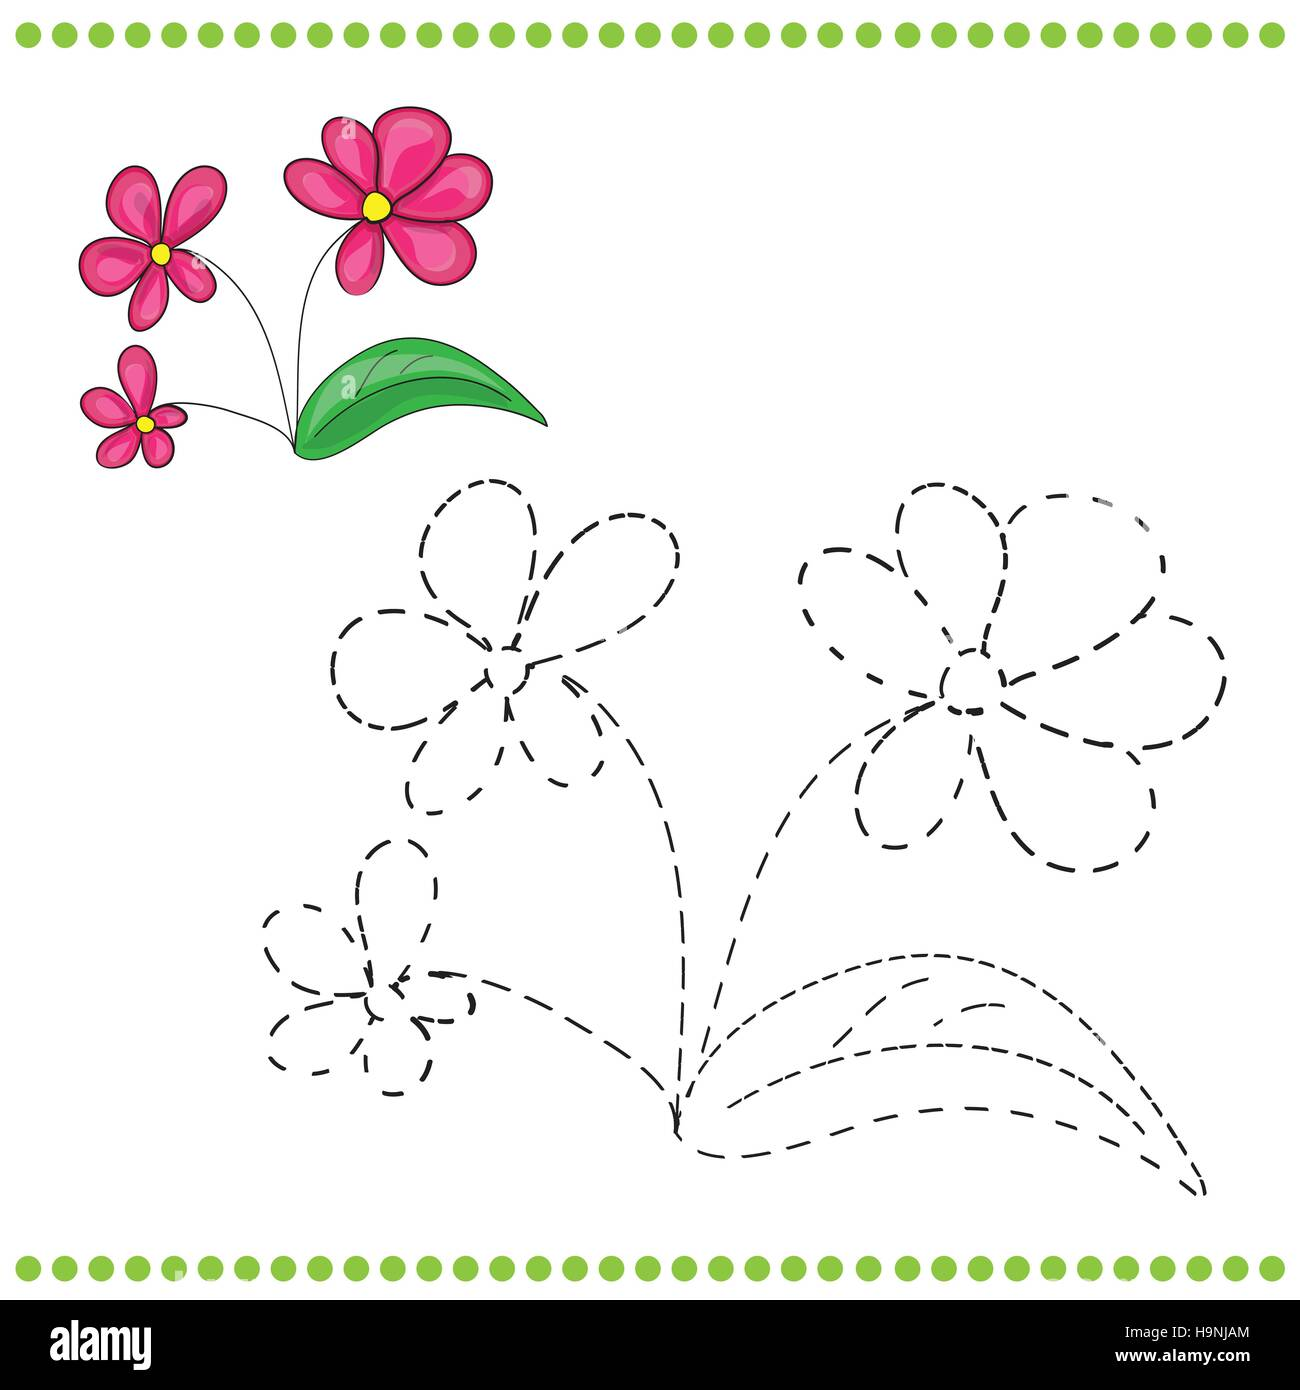 Connect The Dots And Coloring Page With Grass And Flowers Stock